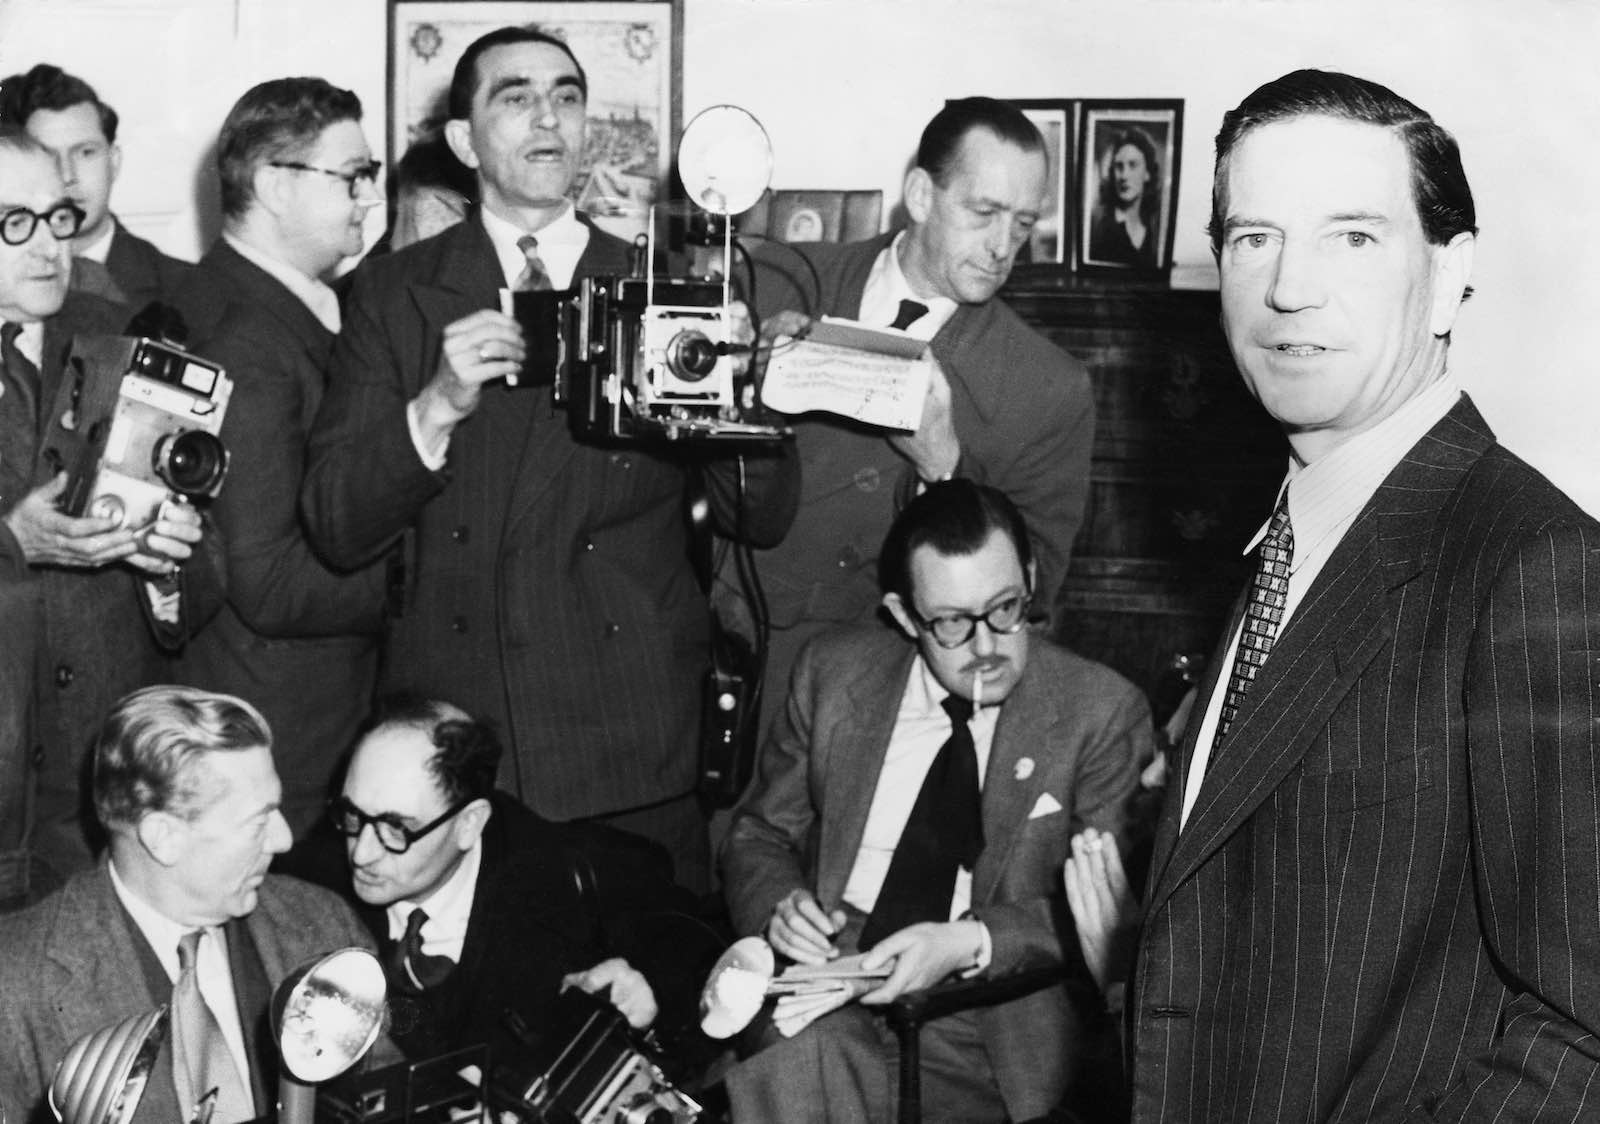 Kim Philby, later revealed as one of the Cambridge Five spy ring, holds a press conference at his mother's home in 1955 after his name had been mentioned in connection with the the Burgess and Maclean affair (Photo: Hulton Archive/Getty)